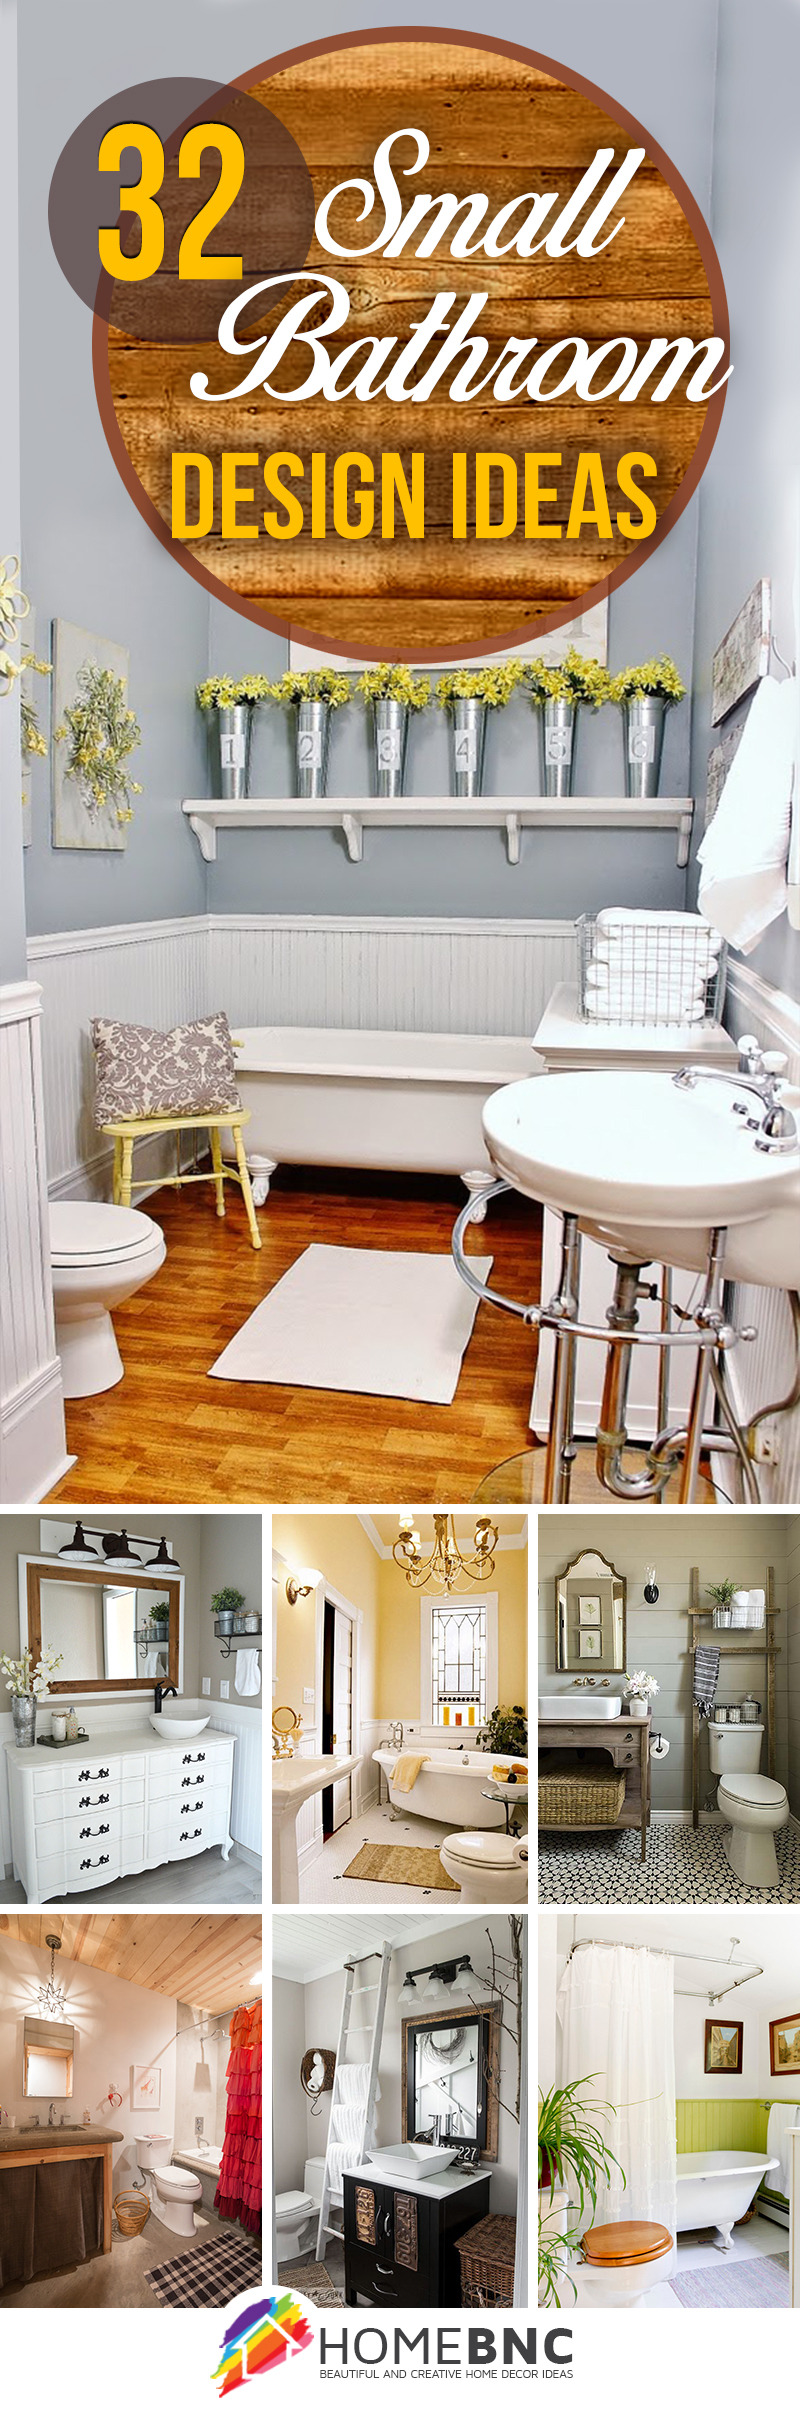 How to Decorate Small Bathrooms Unique 32 Best Small Bathroom Design Ideas and Decorations for 2020